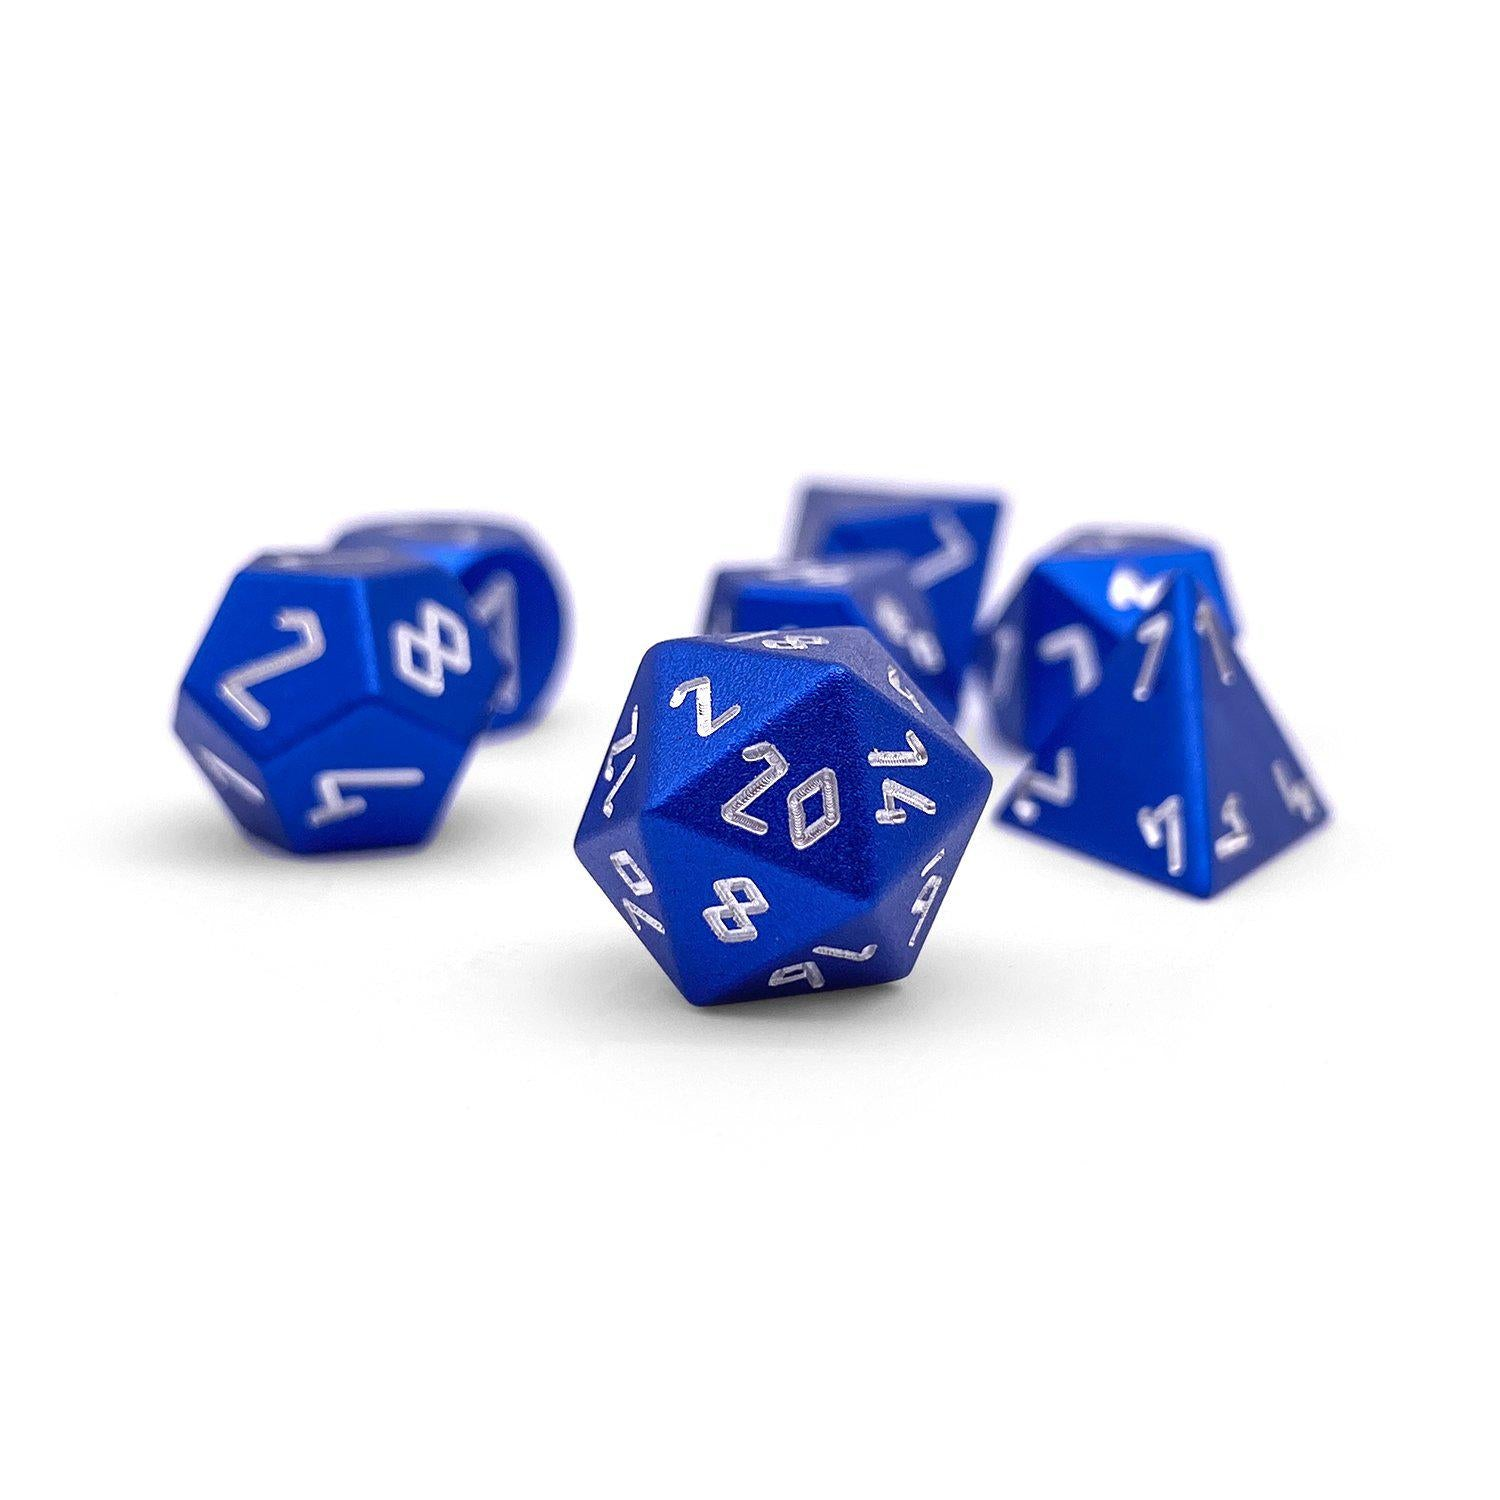 Noble Blue Pebble ™ Dice - 10mm 6063 Aircraft Grade Aluminum Mini